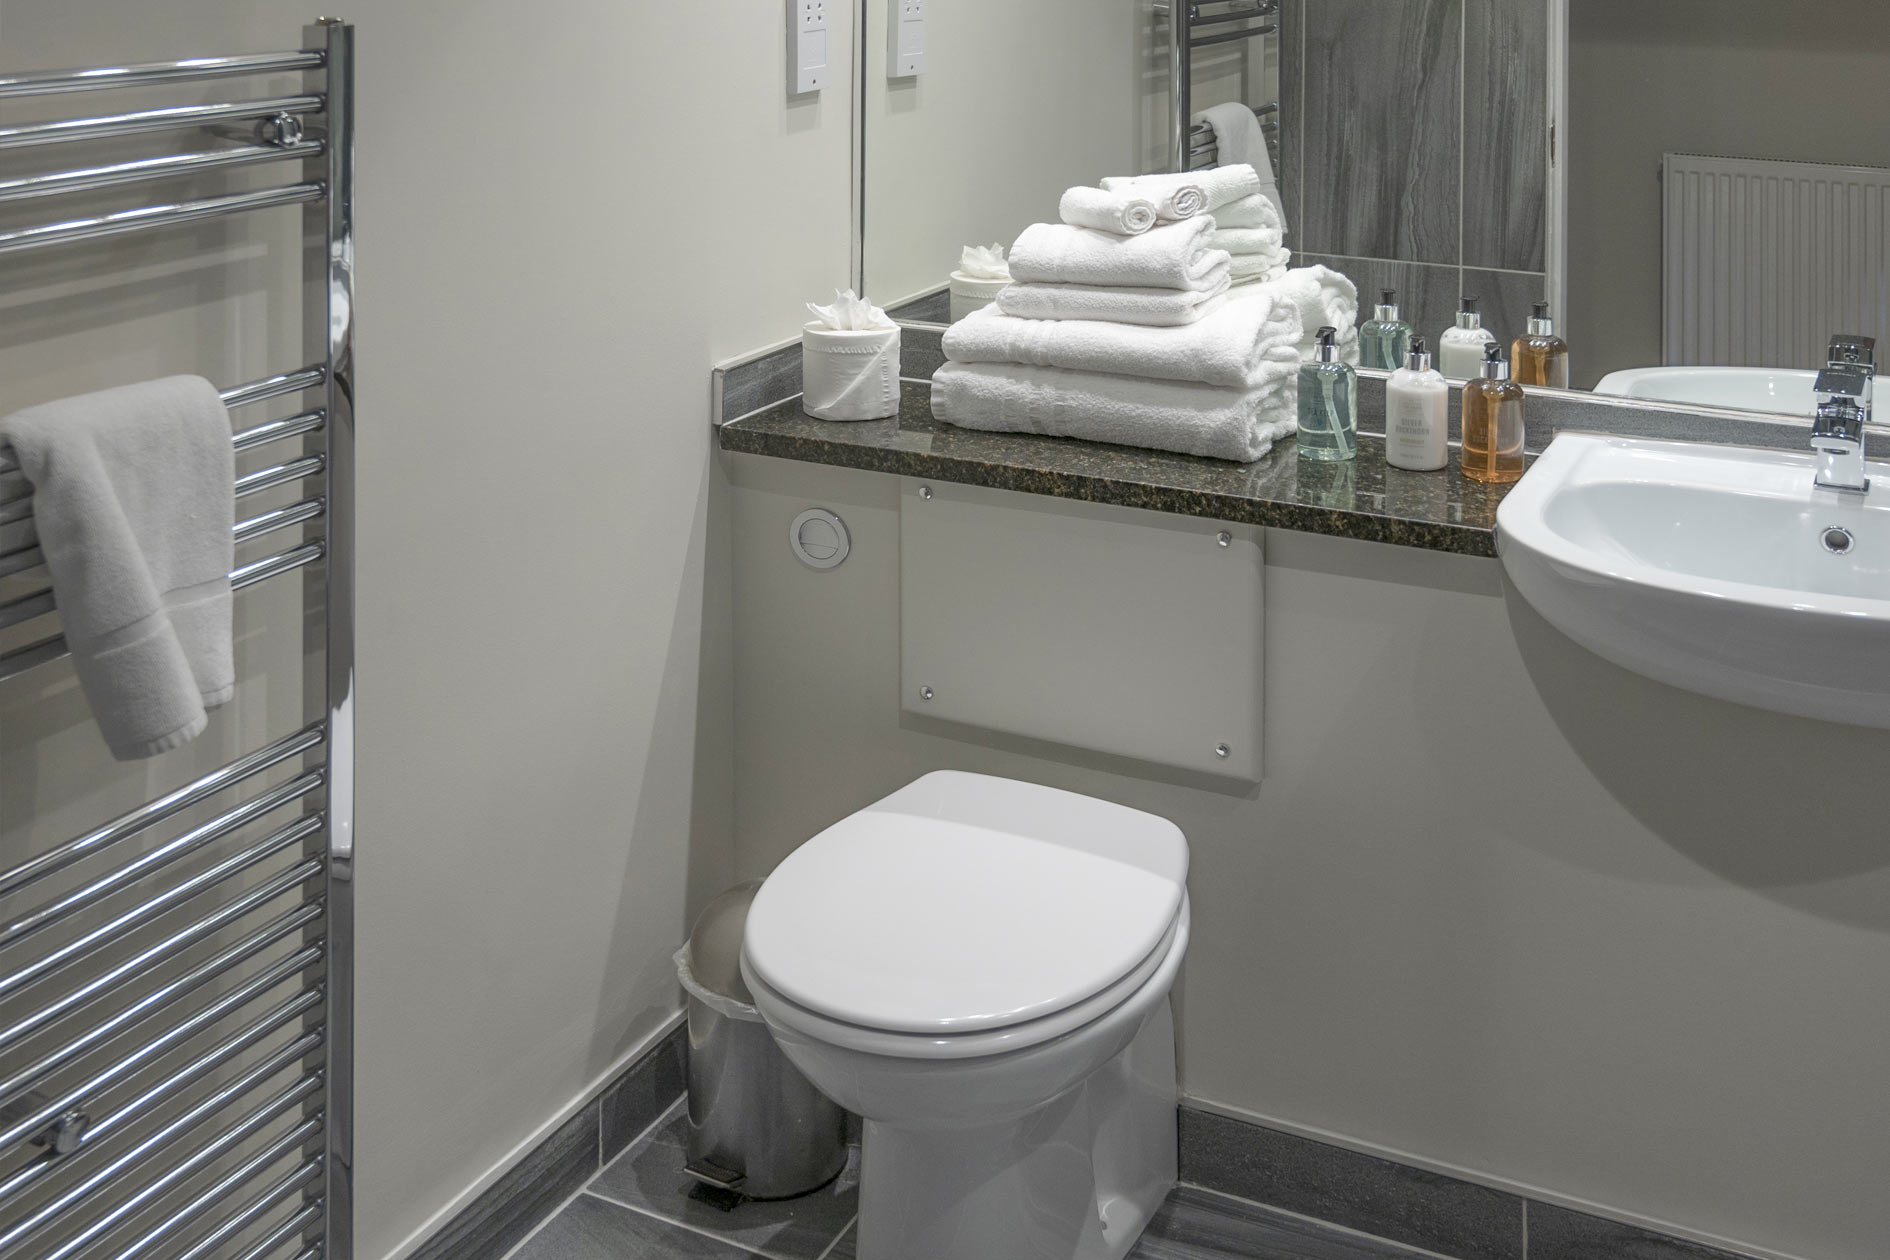 Modern White Wc And Basin With Chrome Radiator Reflected In Mirror With Towels And Soaps